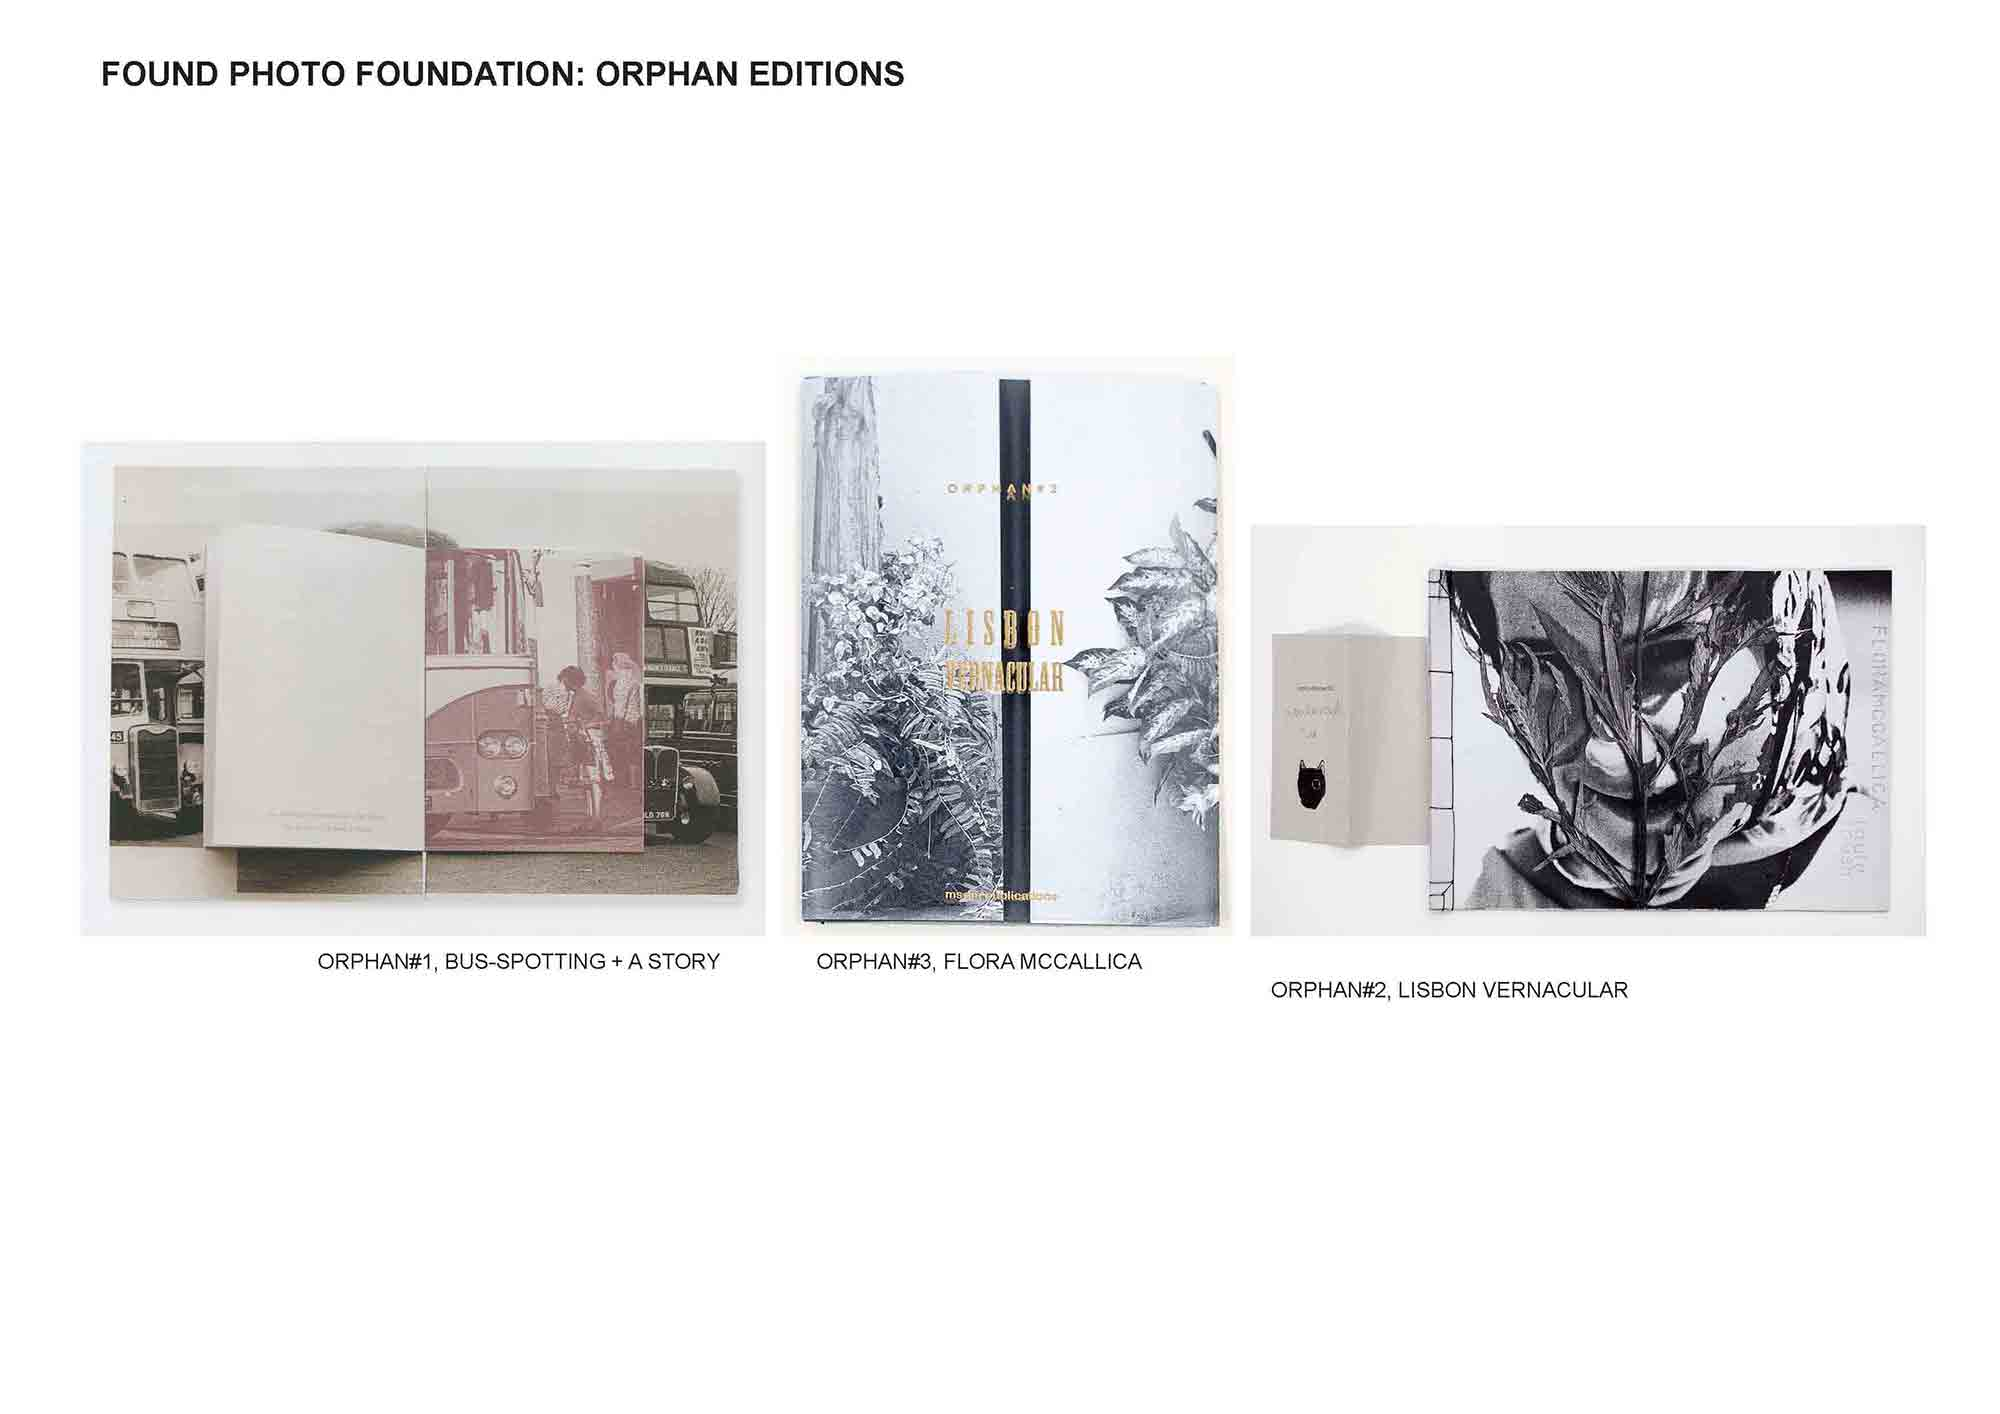 Found-Photo-Foundation-Orphan-Editions_Page_01